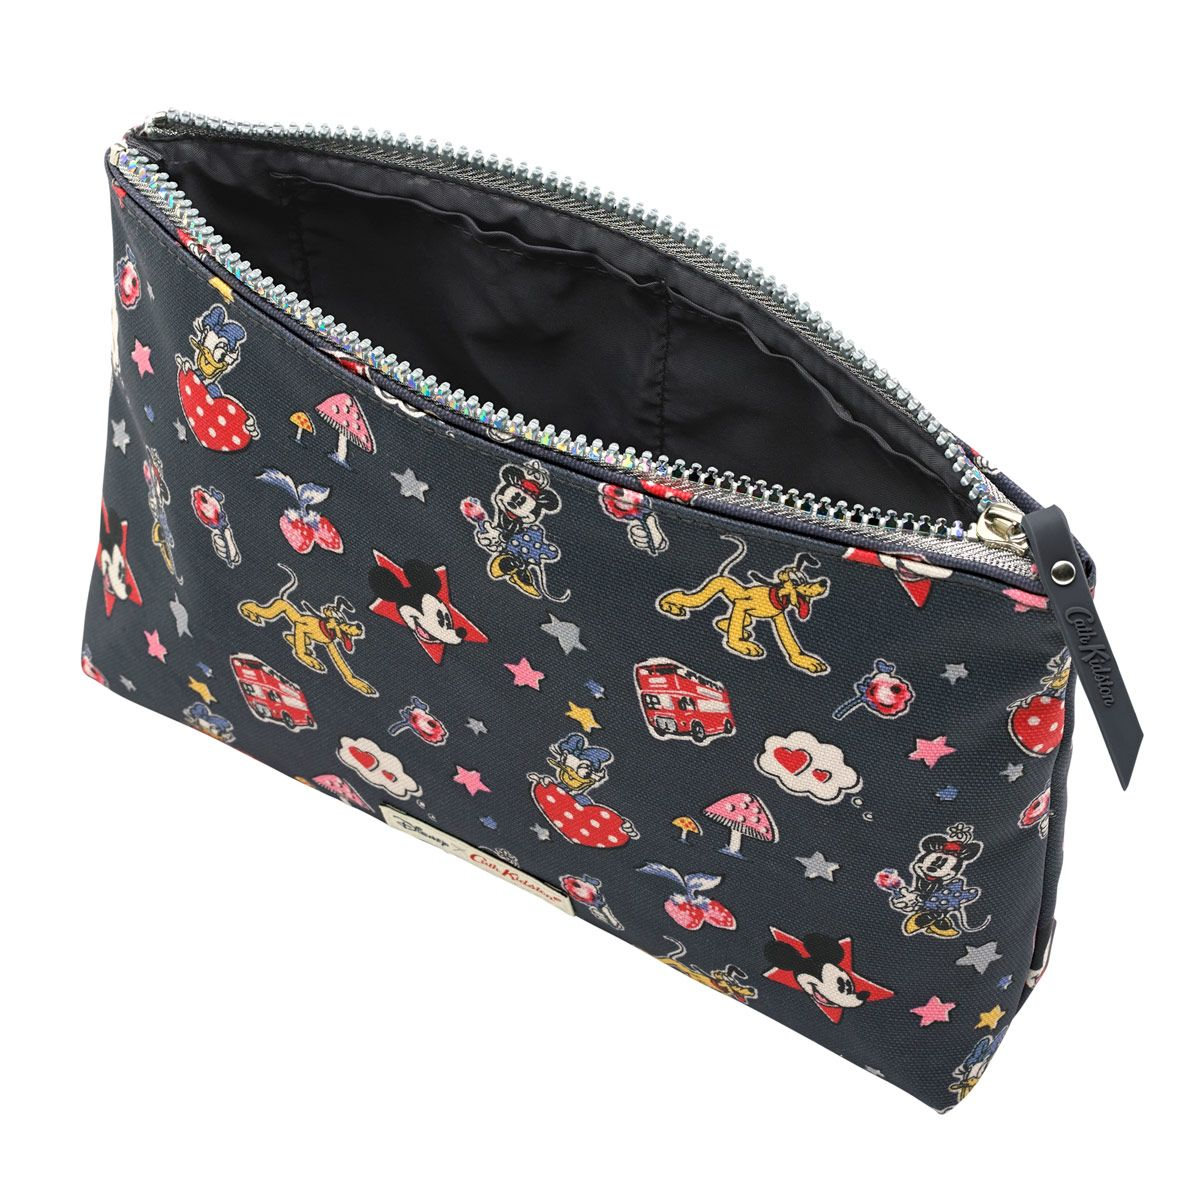 7fa2c25ae98 Mickey And Minnie Little Patches Zip Cosmetic Bag Mouse Accessories  Cathkidston